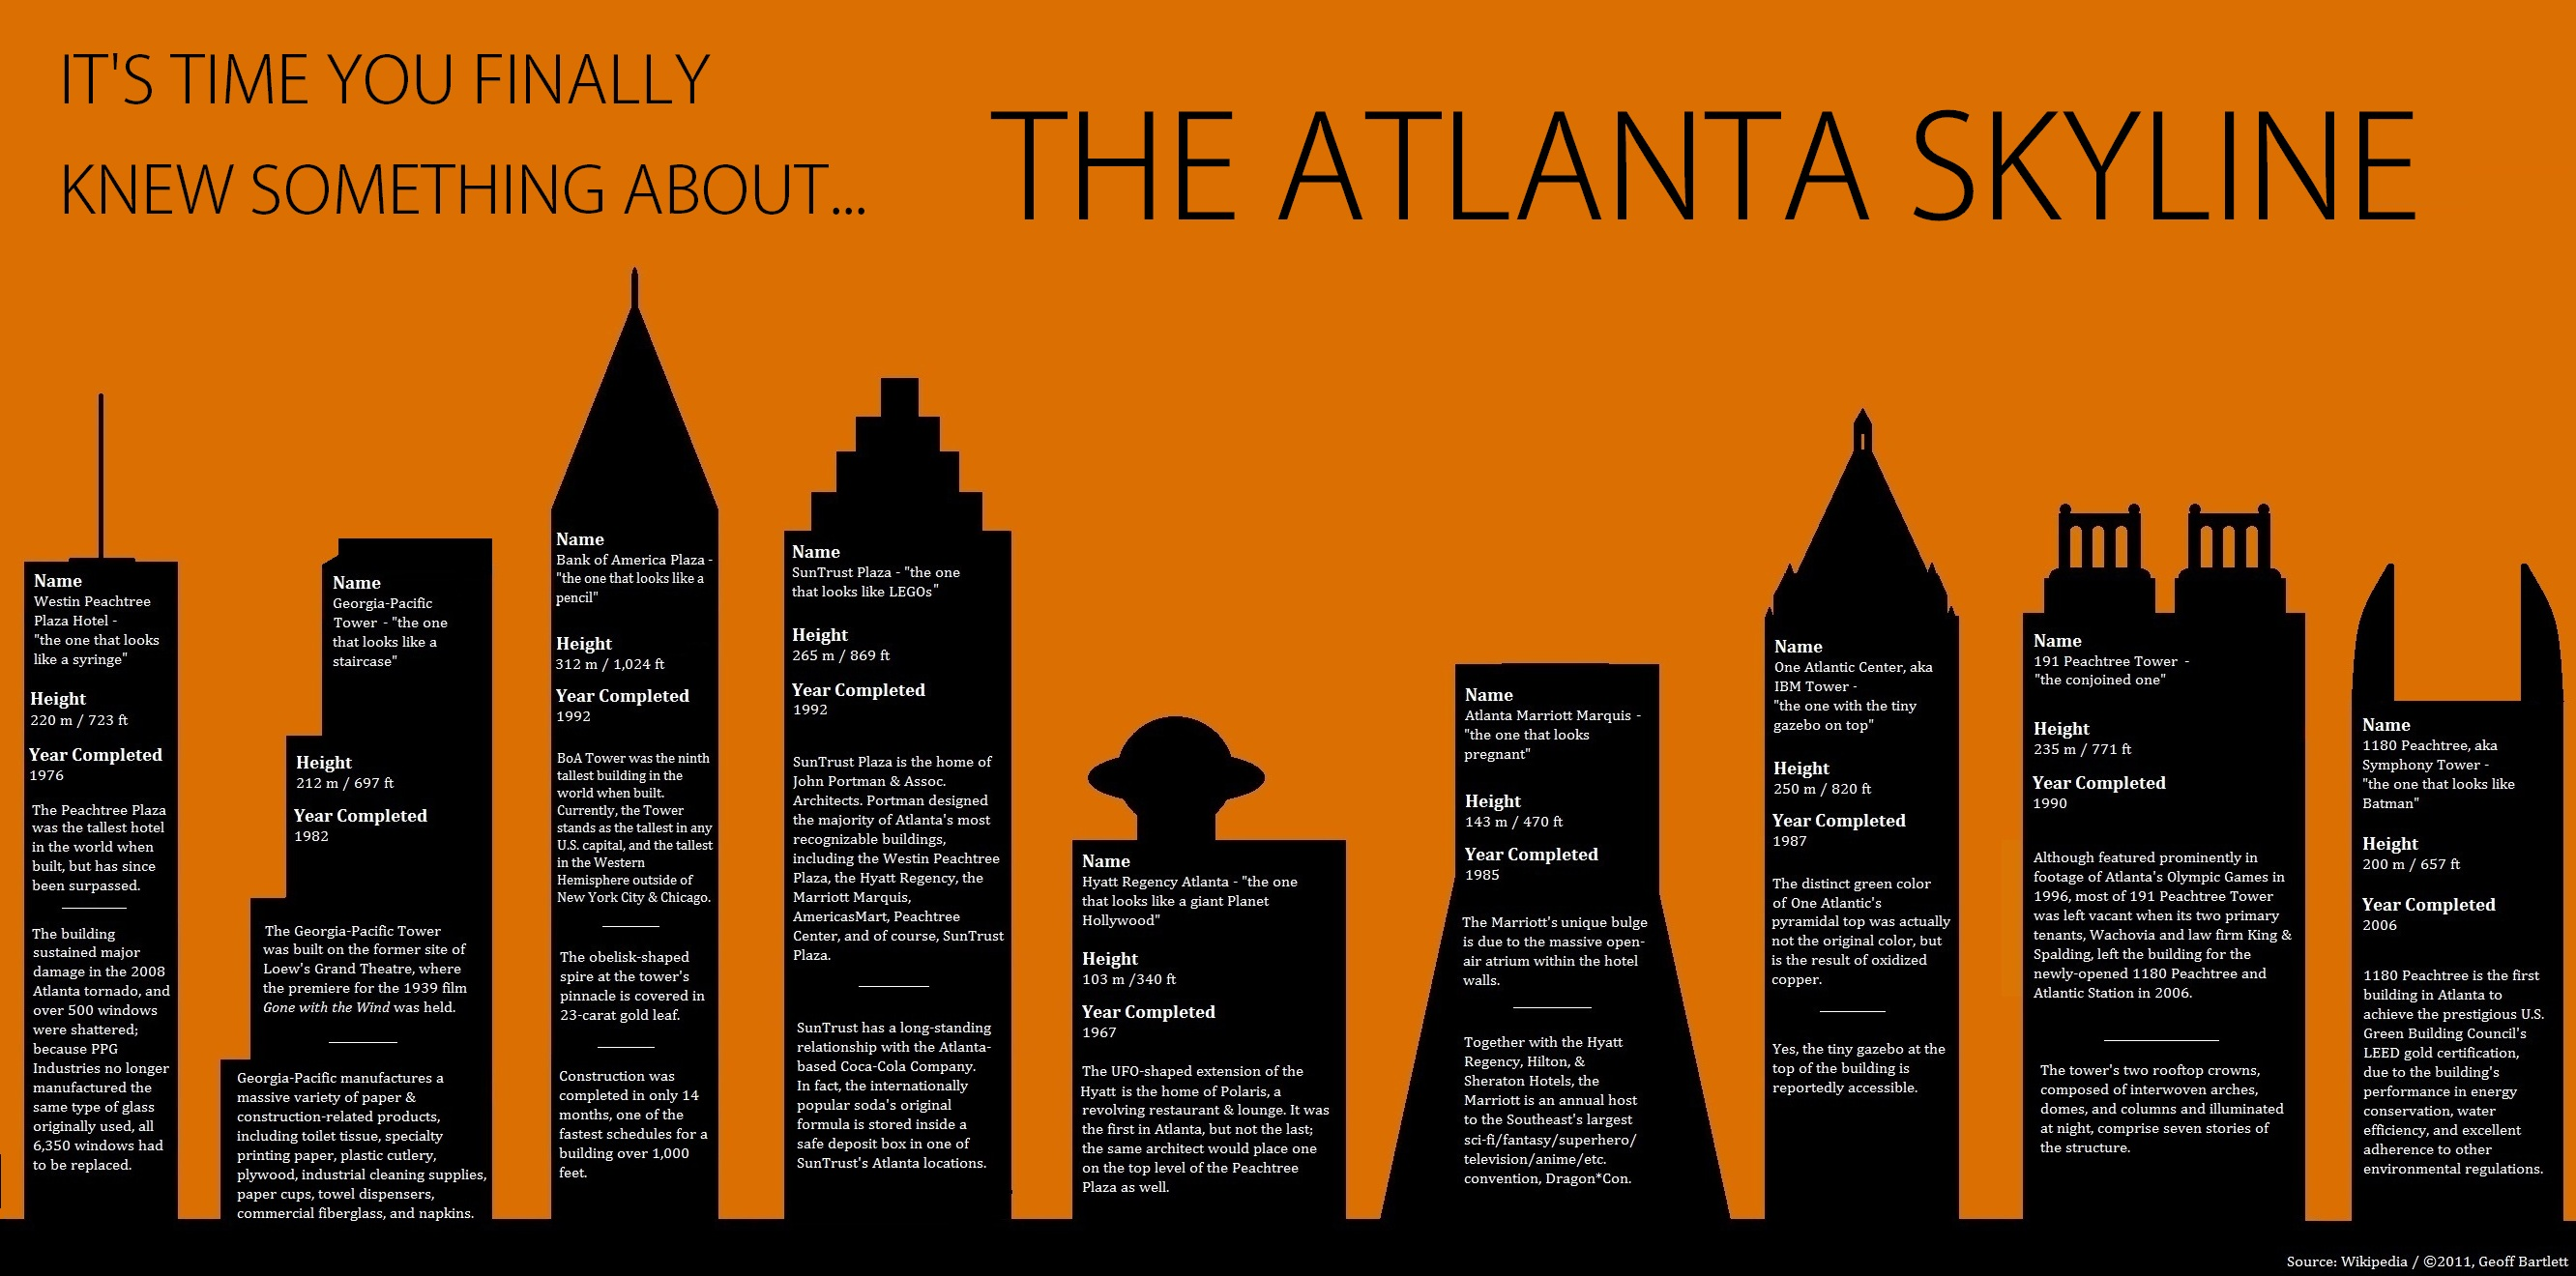 Did-you-know-Atlanta-is-one-of-the-only-true-skyscraper-cities-in-the-United-States-Outside-of-New-wallpaper-wpc5804124